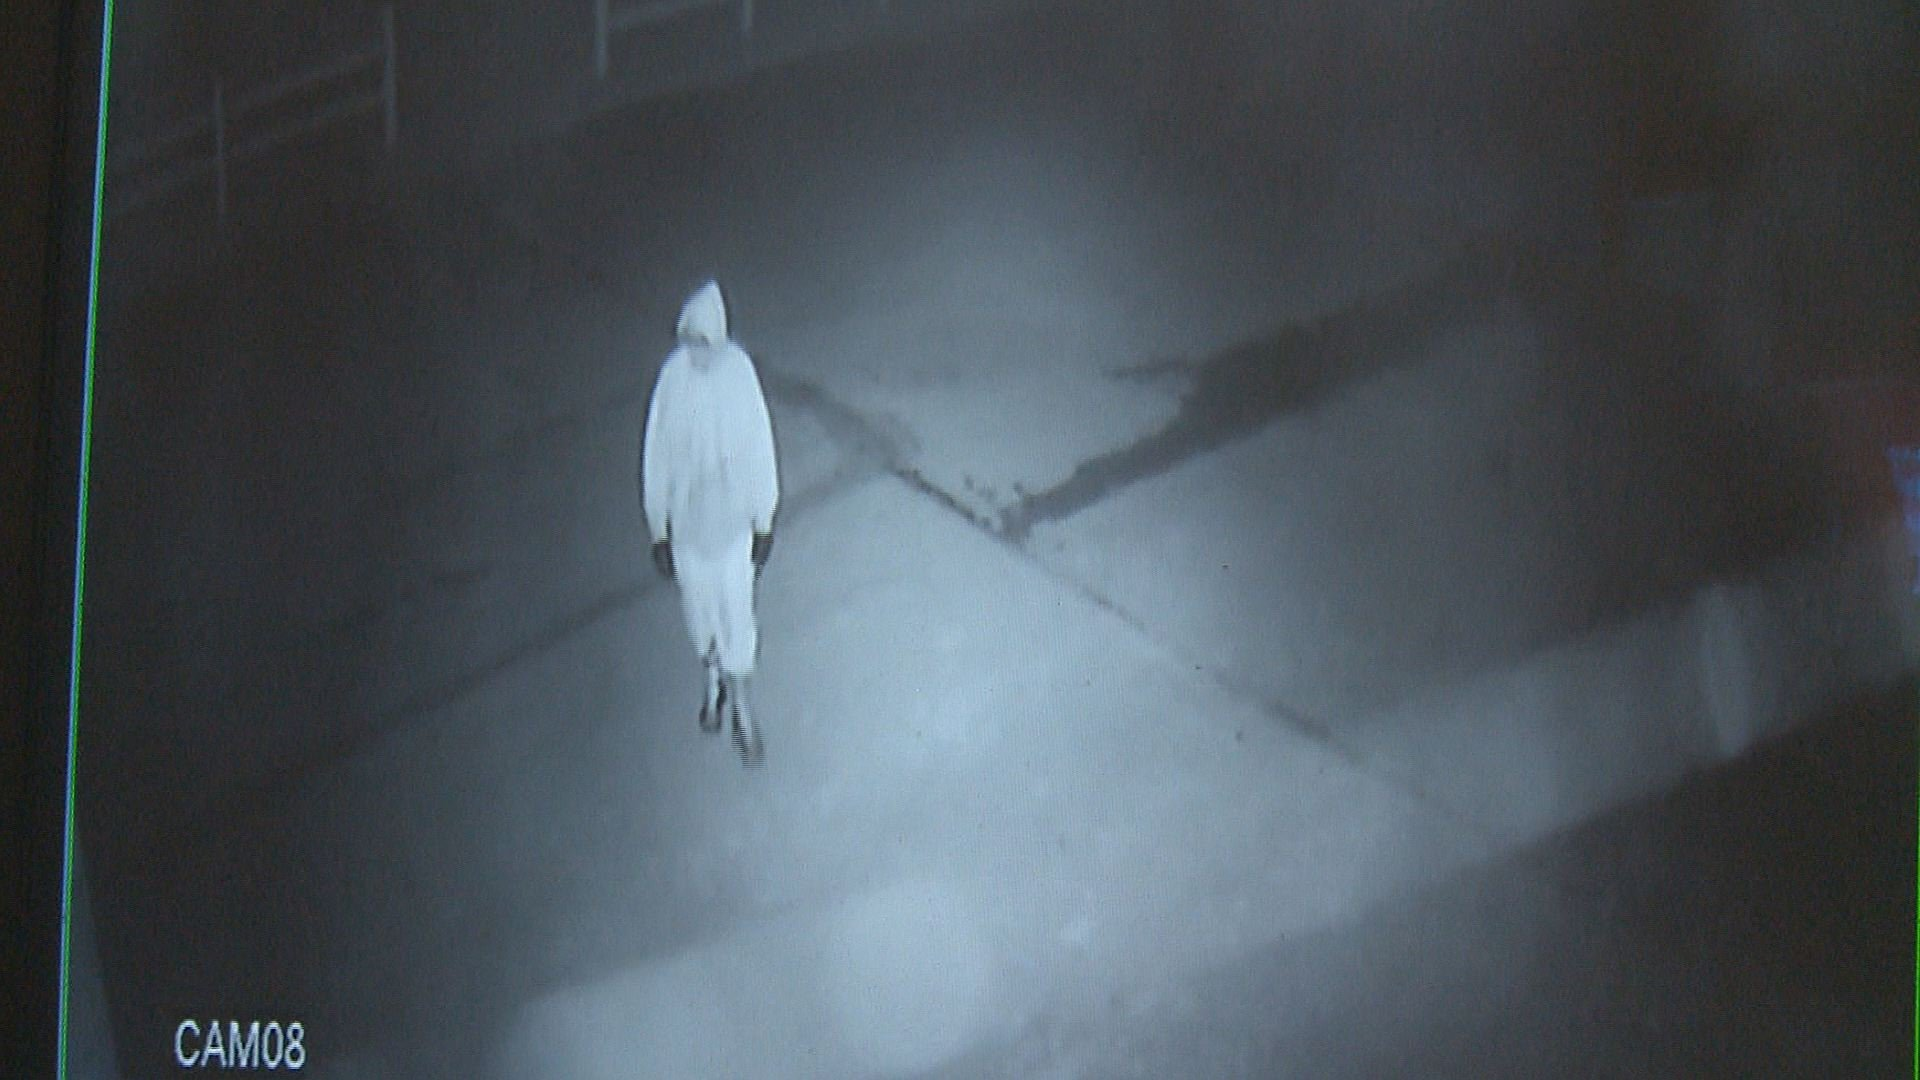 Surveillance video of 1 of 3 thieves who stole an ATM from Stuckmeyers Farm Market and Greenhouse near Highway 141 and Highway 21